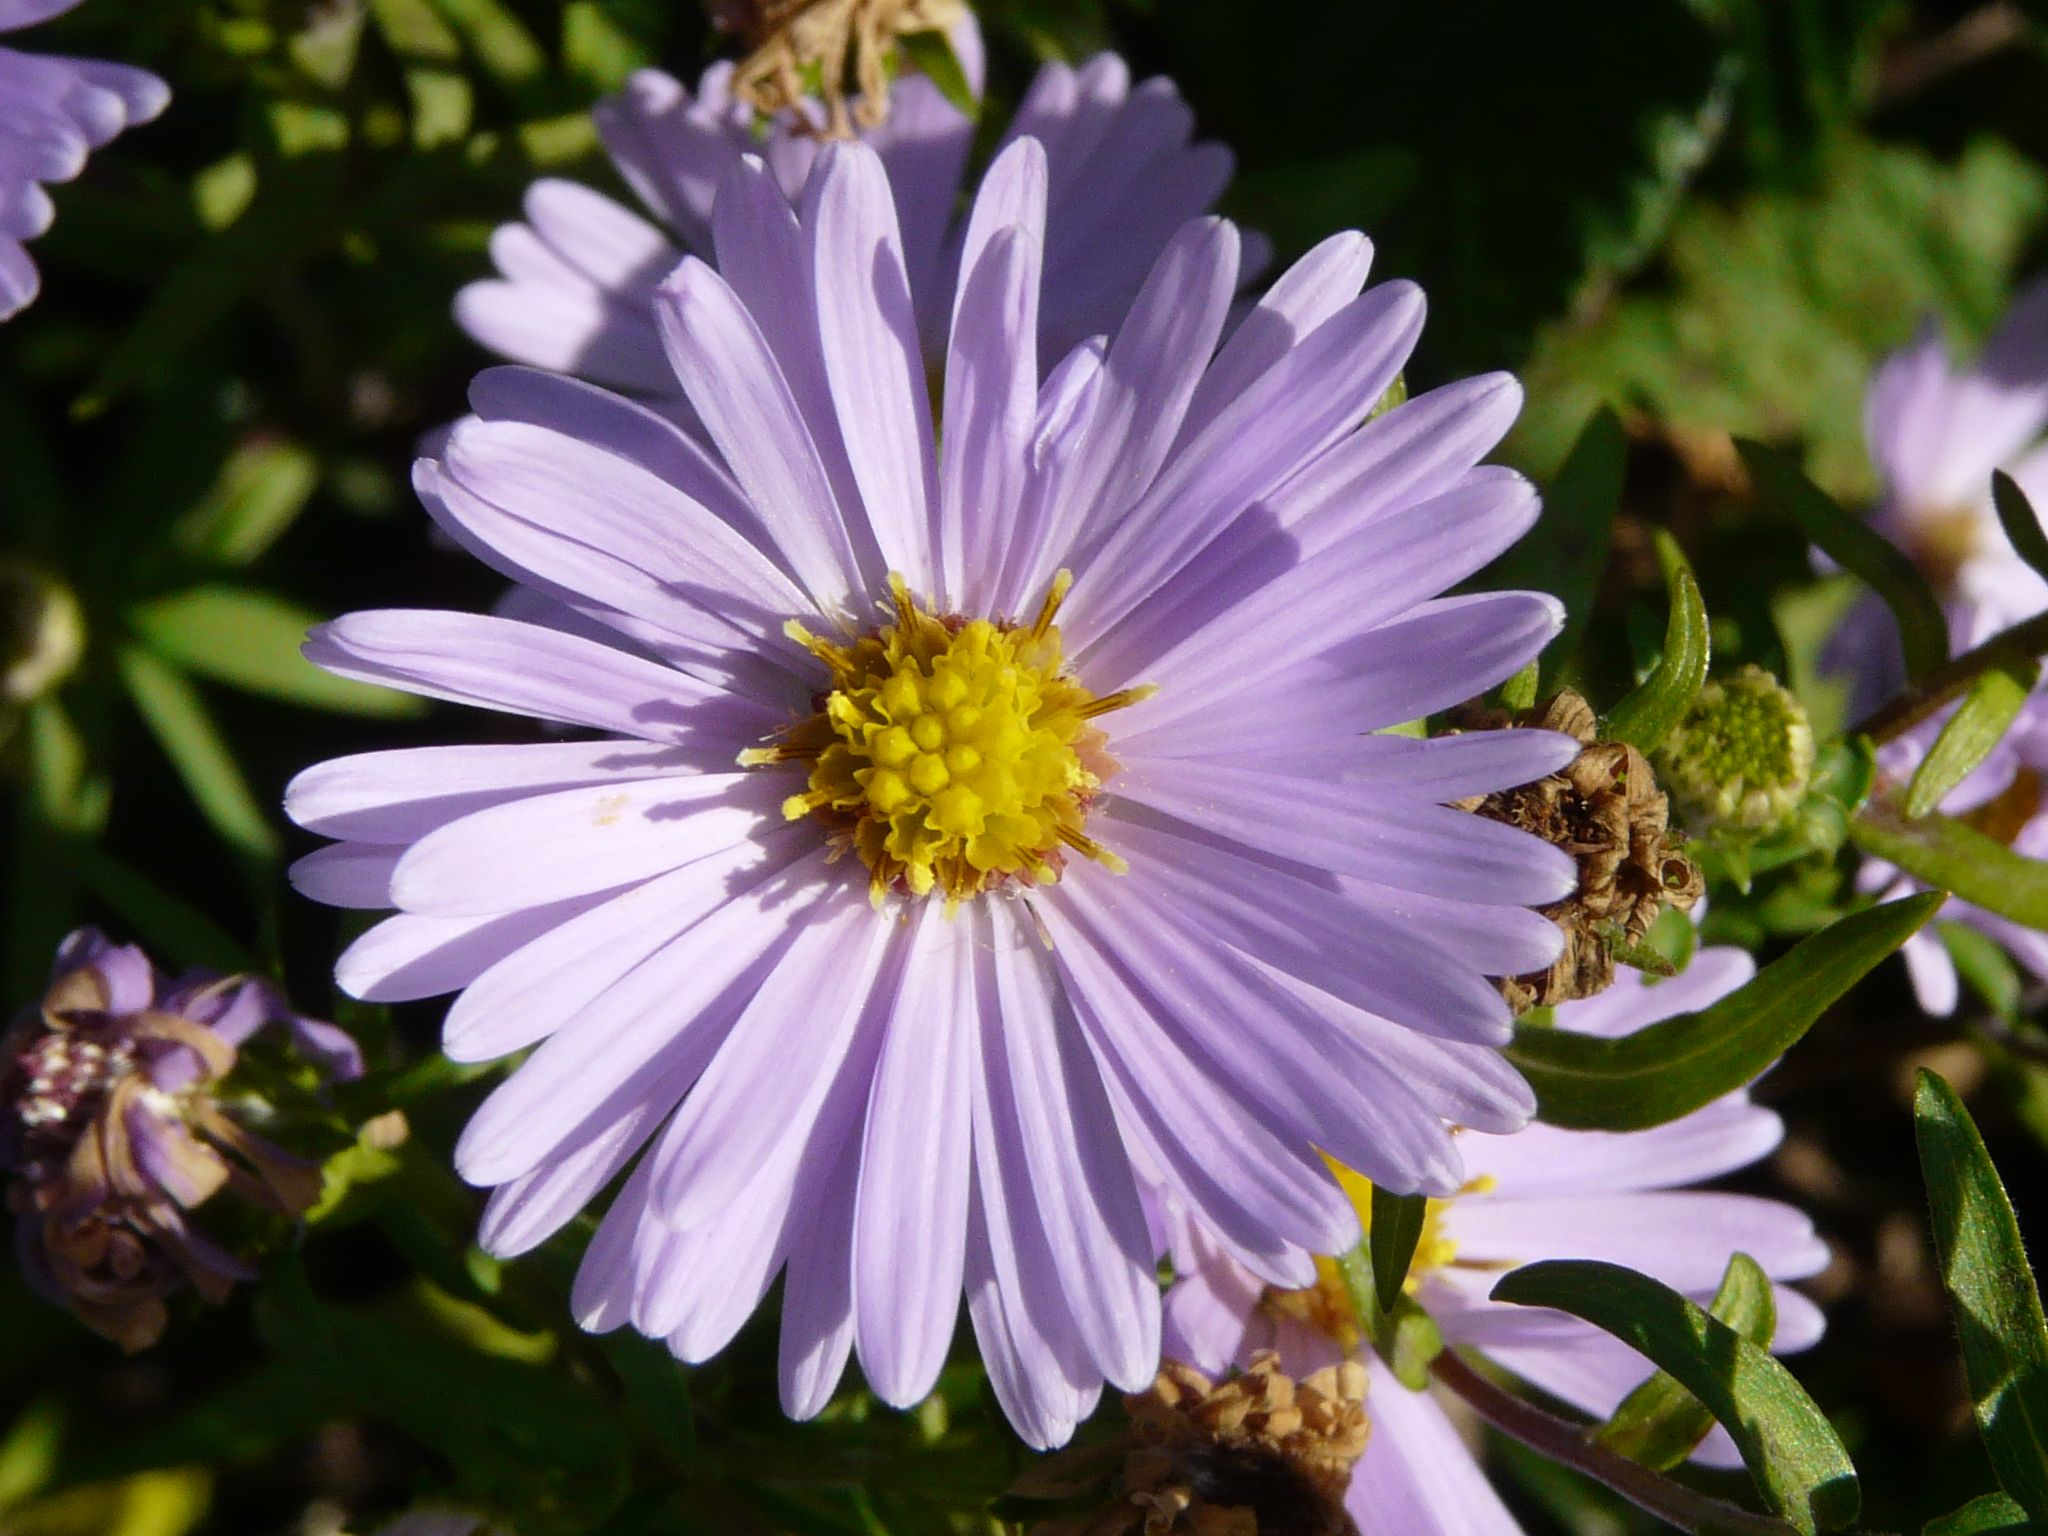 Sea Aster Is A Close Relative Of The Michaelmas Daisy And Flowers At The Same Time Of Year The Flowers Are Very Similar But Cl Michaelmas Daisy Plants Flowers